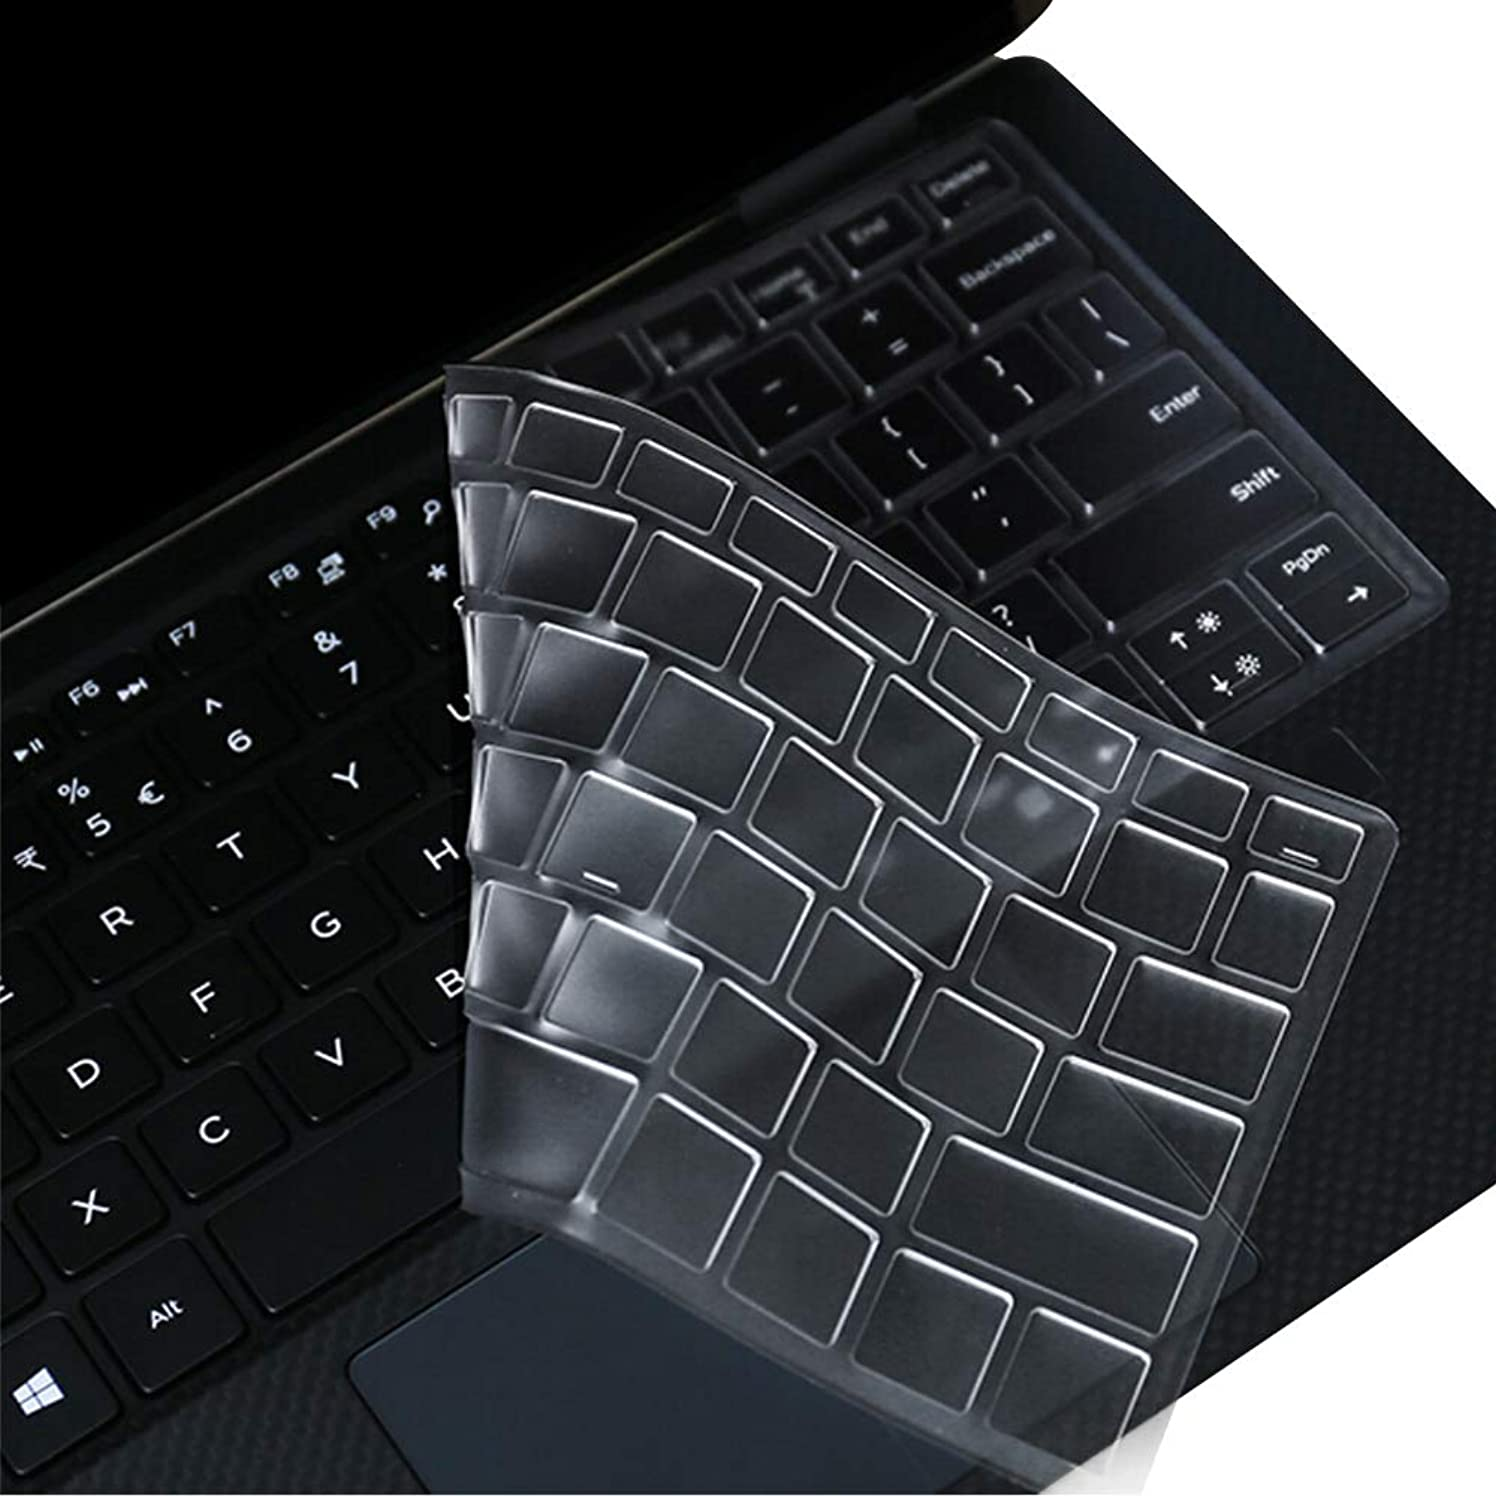 MOSISO Keyboard Cover Compatible with 2019 Dell XPS 13 9380, Dell XPS 9370/9365 13 Inch 2 in 1 Ultrabook Computer(2018/2017 Released),US Version,Ultra Thin Anti-Dust Waterproof Protective Skin,Clear